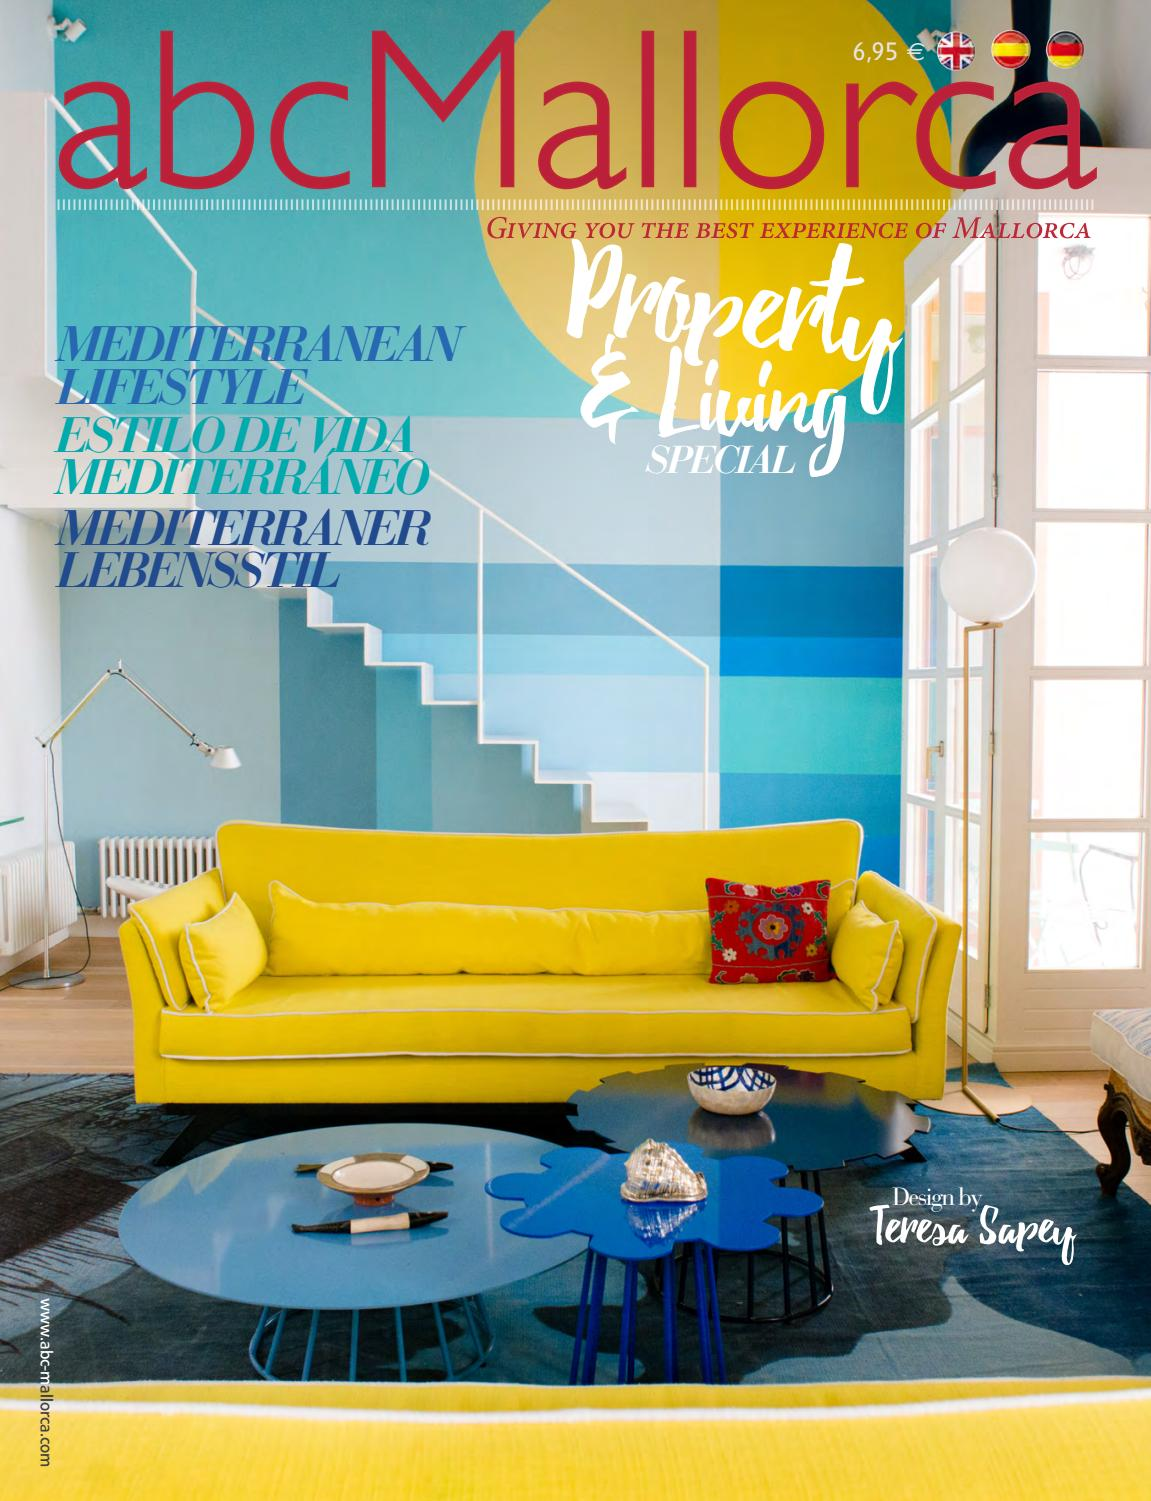 117th abcMallorca Property   Living Special 2018 by abcMallorca - issuu ca22cfcc5a9f